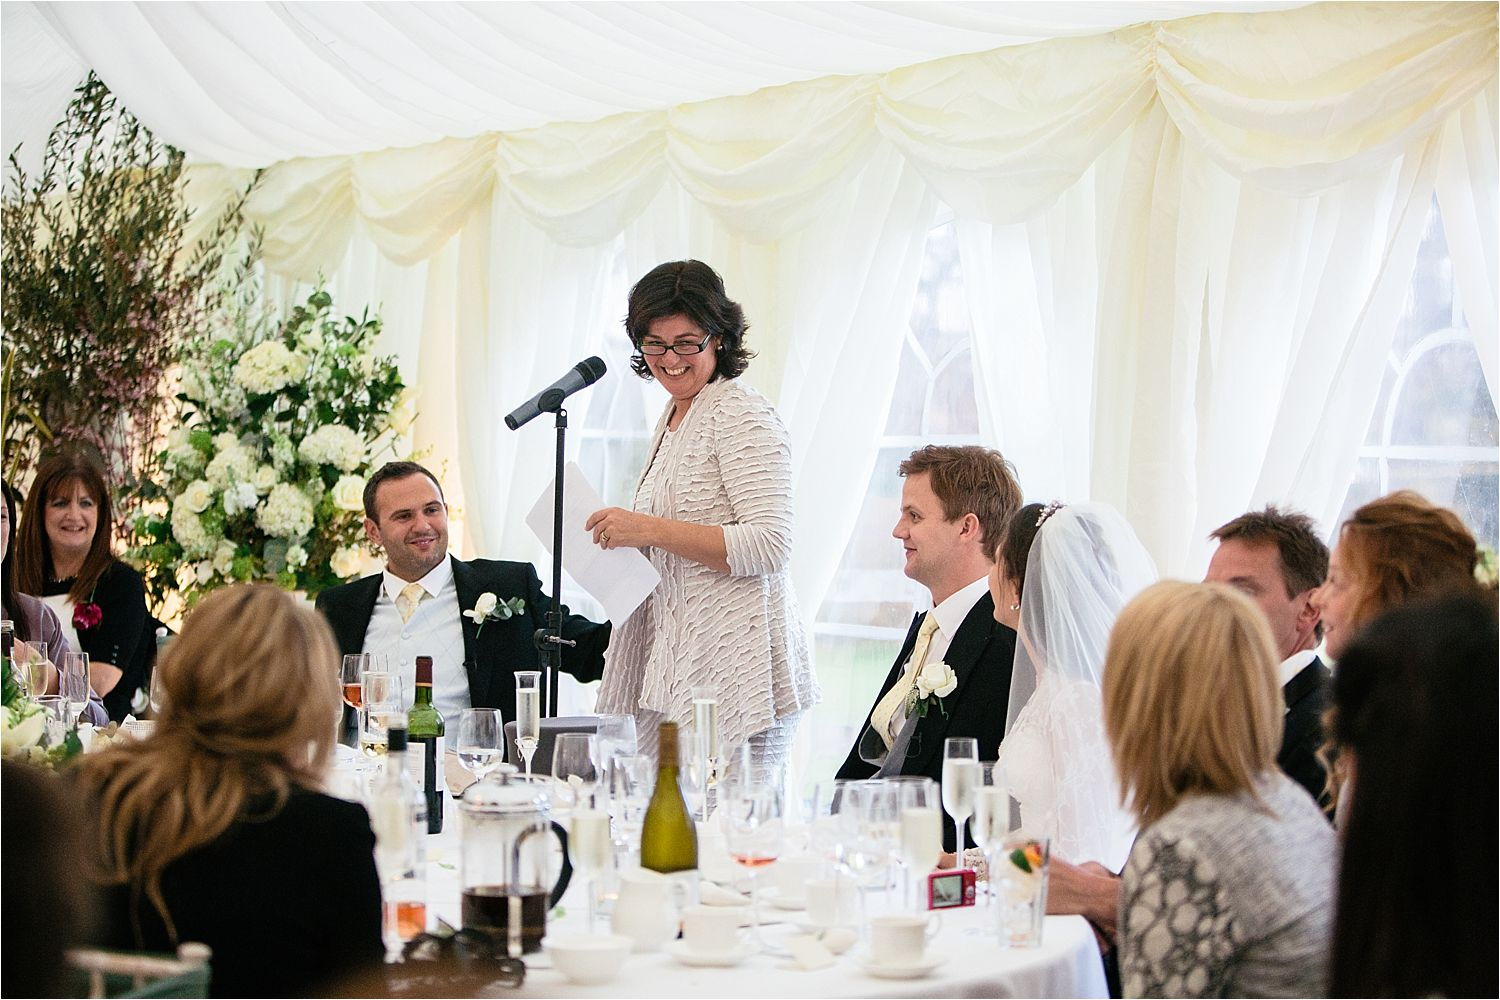 Guests enjoy the speeches at Cheshire wedding venue Hilltop Country House